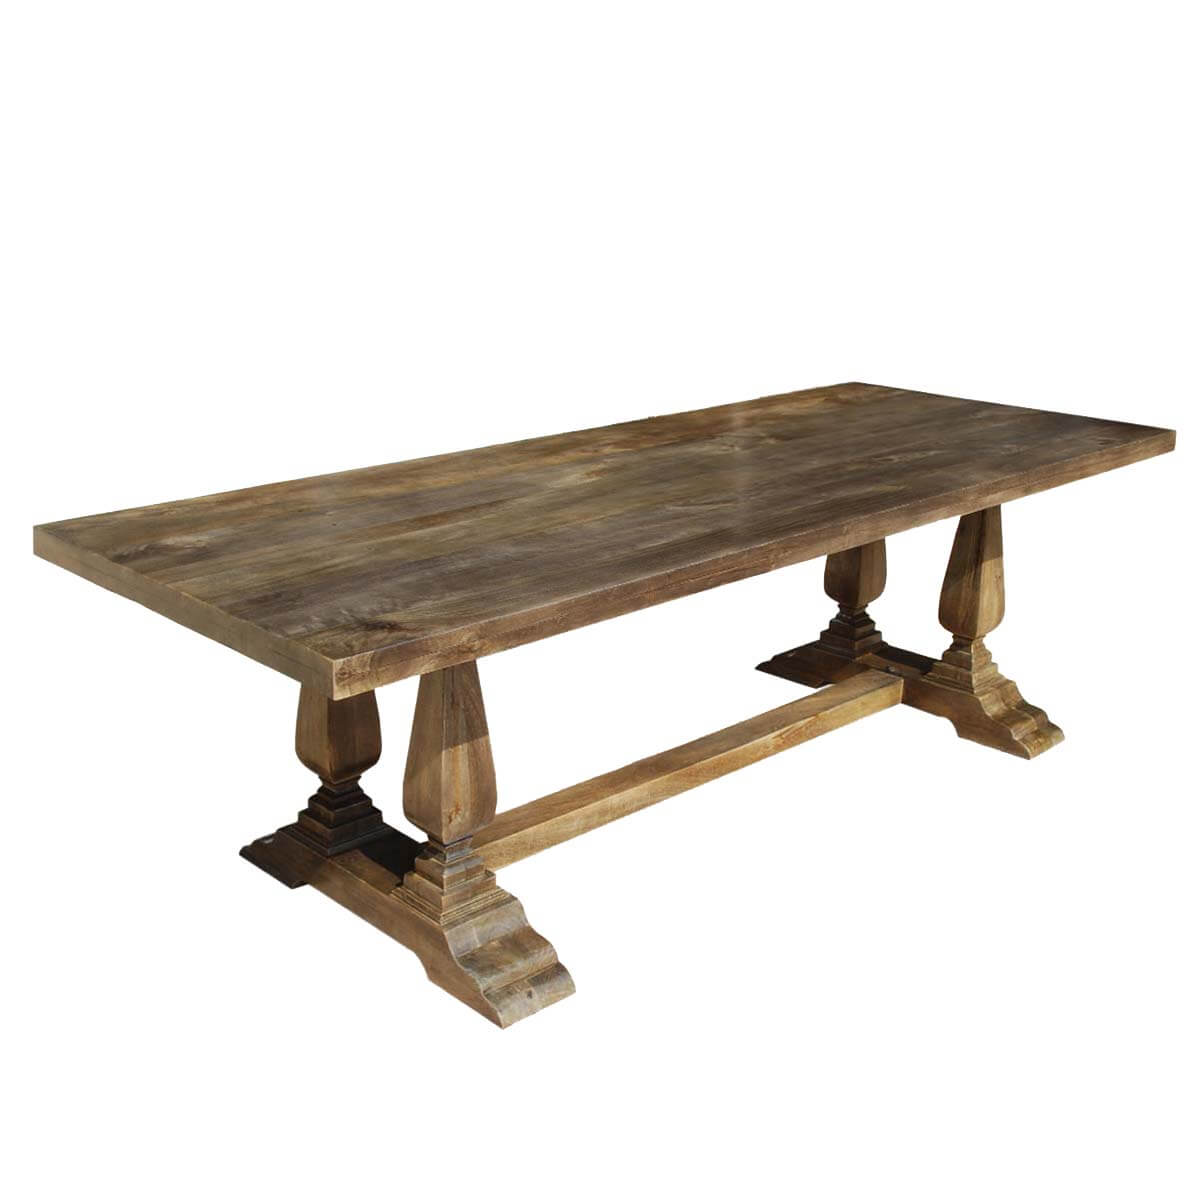 Pelham rustic 98 solid wood trestle pedestal dining table Trestle dining table